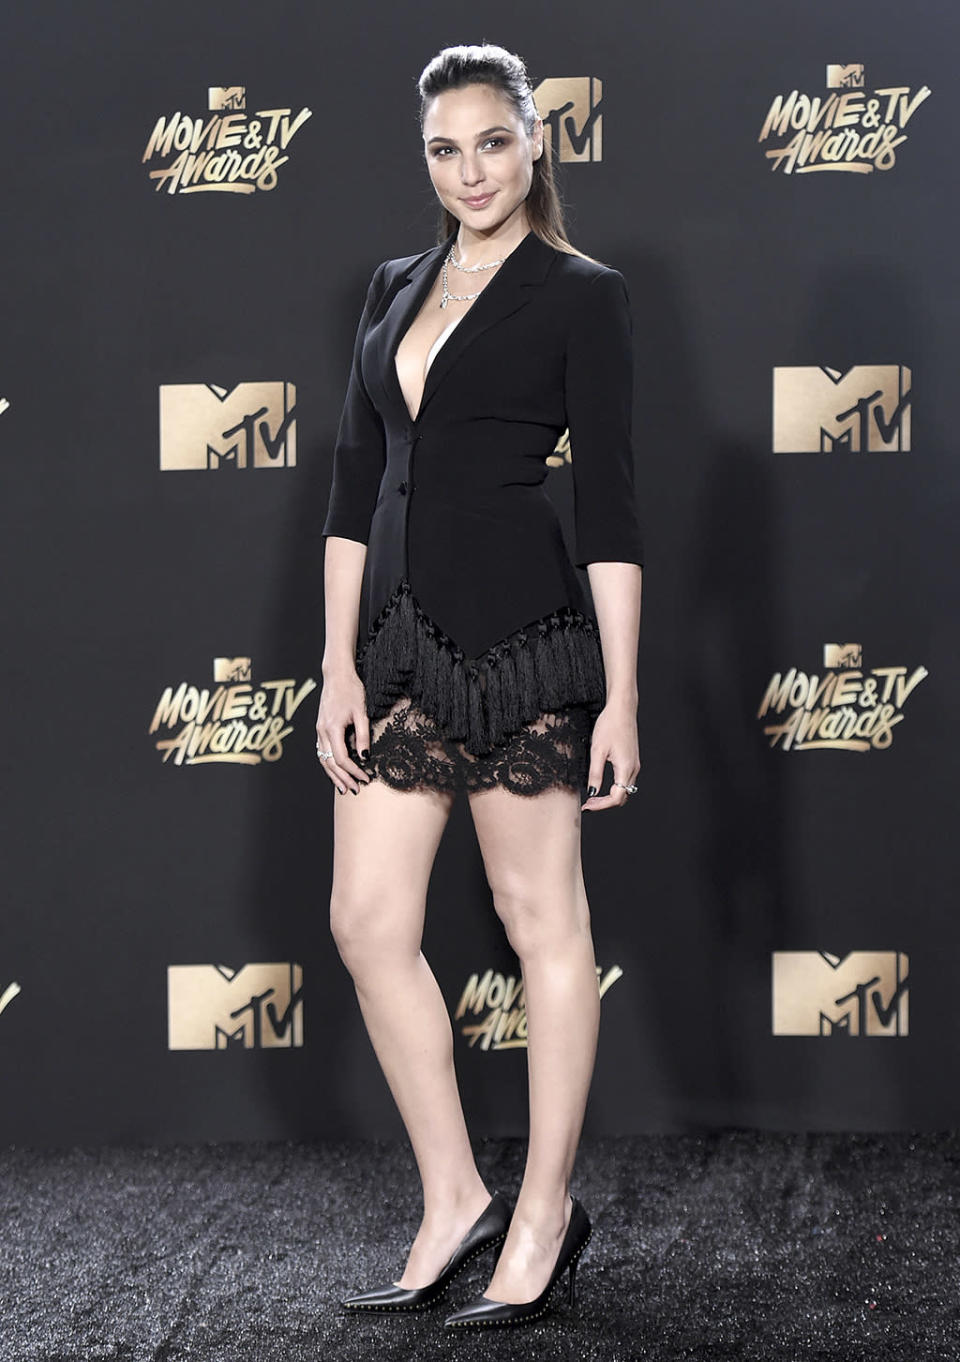 """<p>While Gadot is a fan of flats, she brought out the stilettos, pairing them with a tuxedo top and a lace skirt for last month's 2017 MTV Movie and TV Awards. She also <a rel=""""nofollow"""" href=""""https://www.yahoo.com/celebrity/wonder-woman-gal-gadot-brings-trailer-mtv-movie-014004457.html"""" data-ylk=""""slk:dropped the final trailer;outcm:mb_qualified_link;_E:mb_qualified_link;ct:story;"""" class=""""link rapid-noclick-resp yahoo-link"""">dropped the final trailer</a> for the much-anticipated <i>Wonder Woman</i>. (Photo: Richard Shotwell/Invision/AP) </p>"""